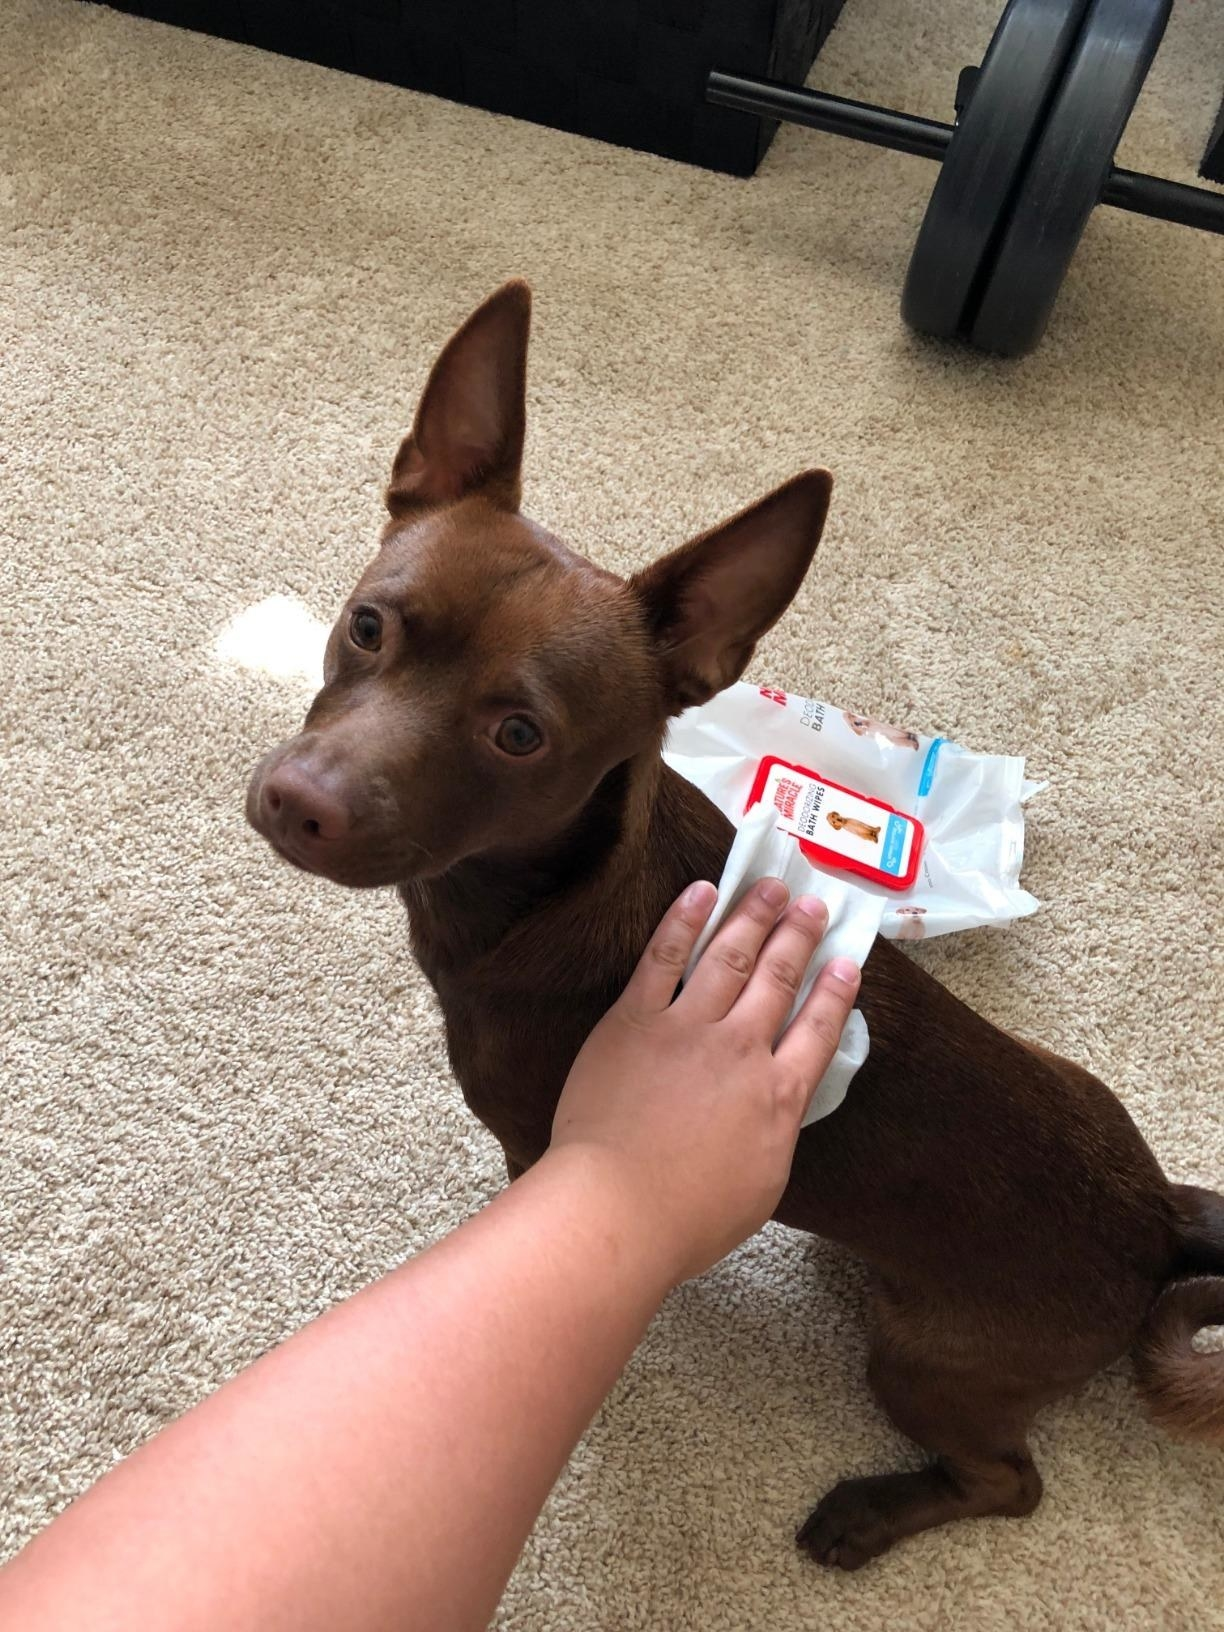 Reviewer's photo of them cleaning their brown dog with a wipe